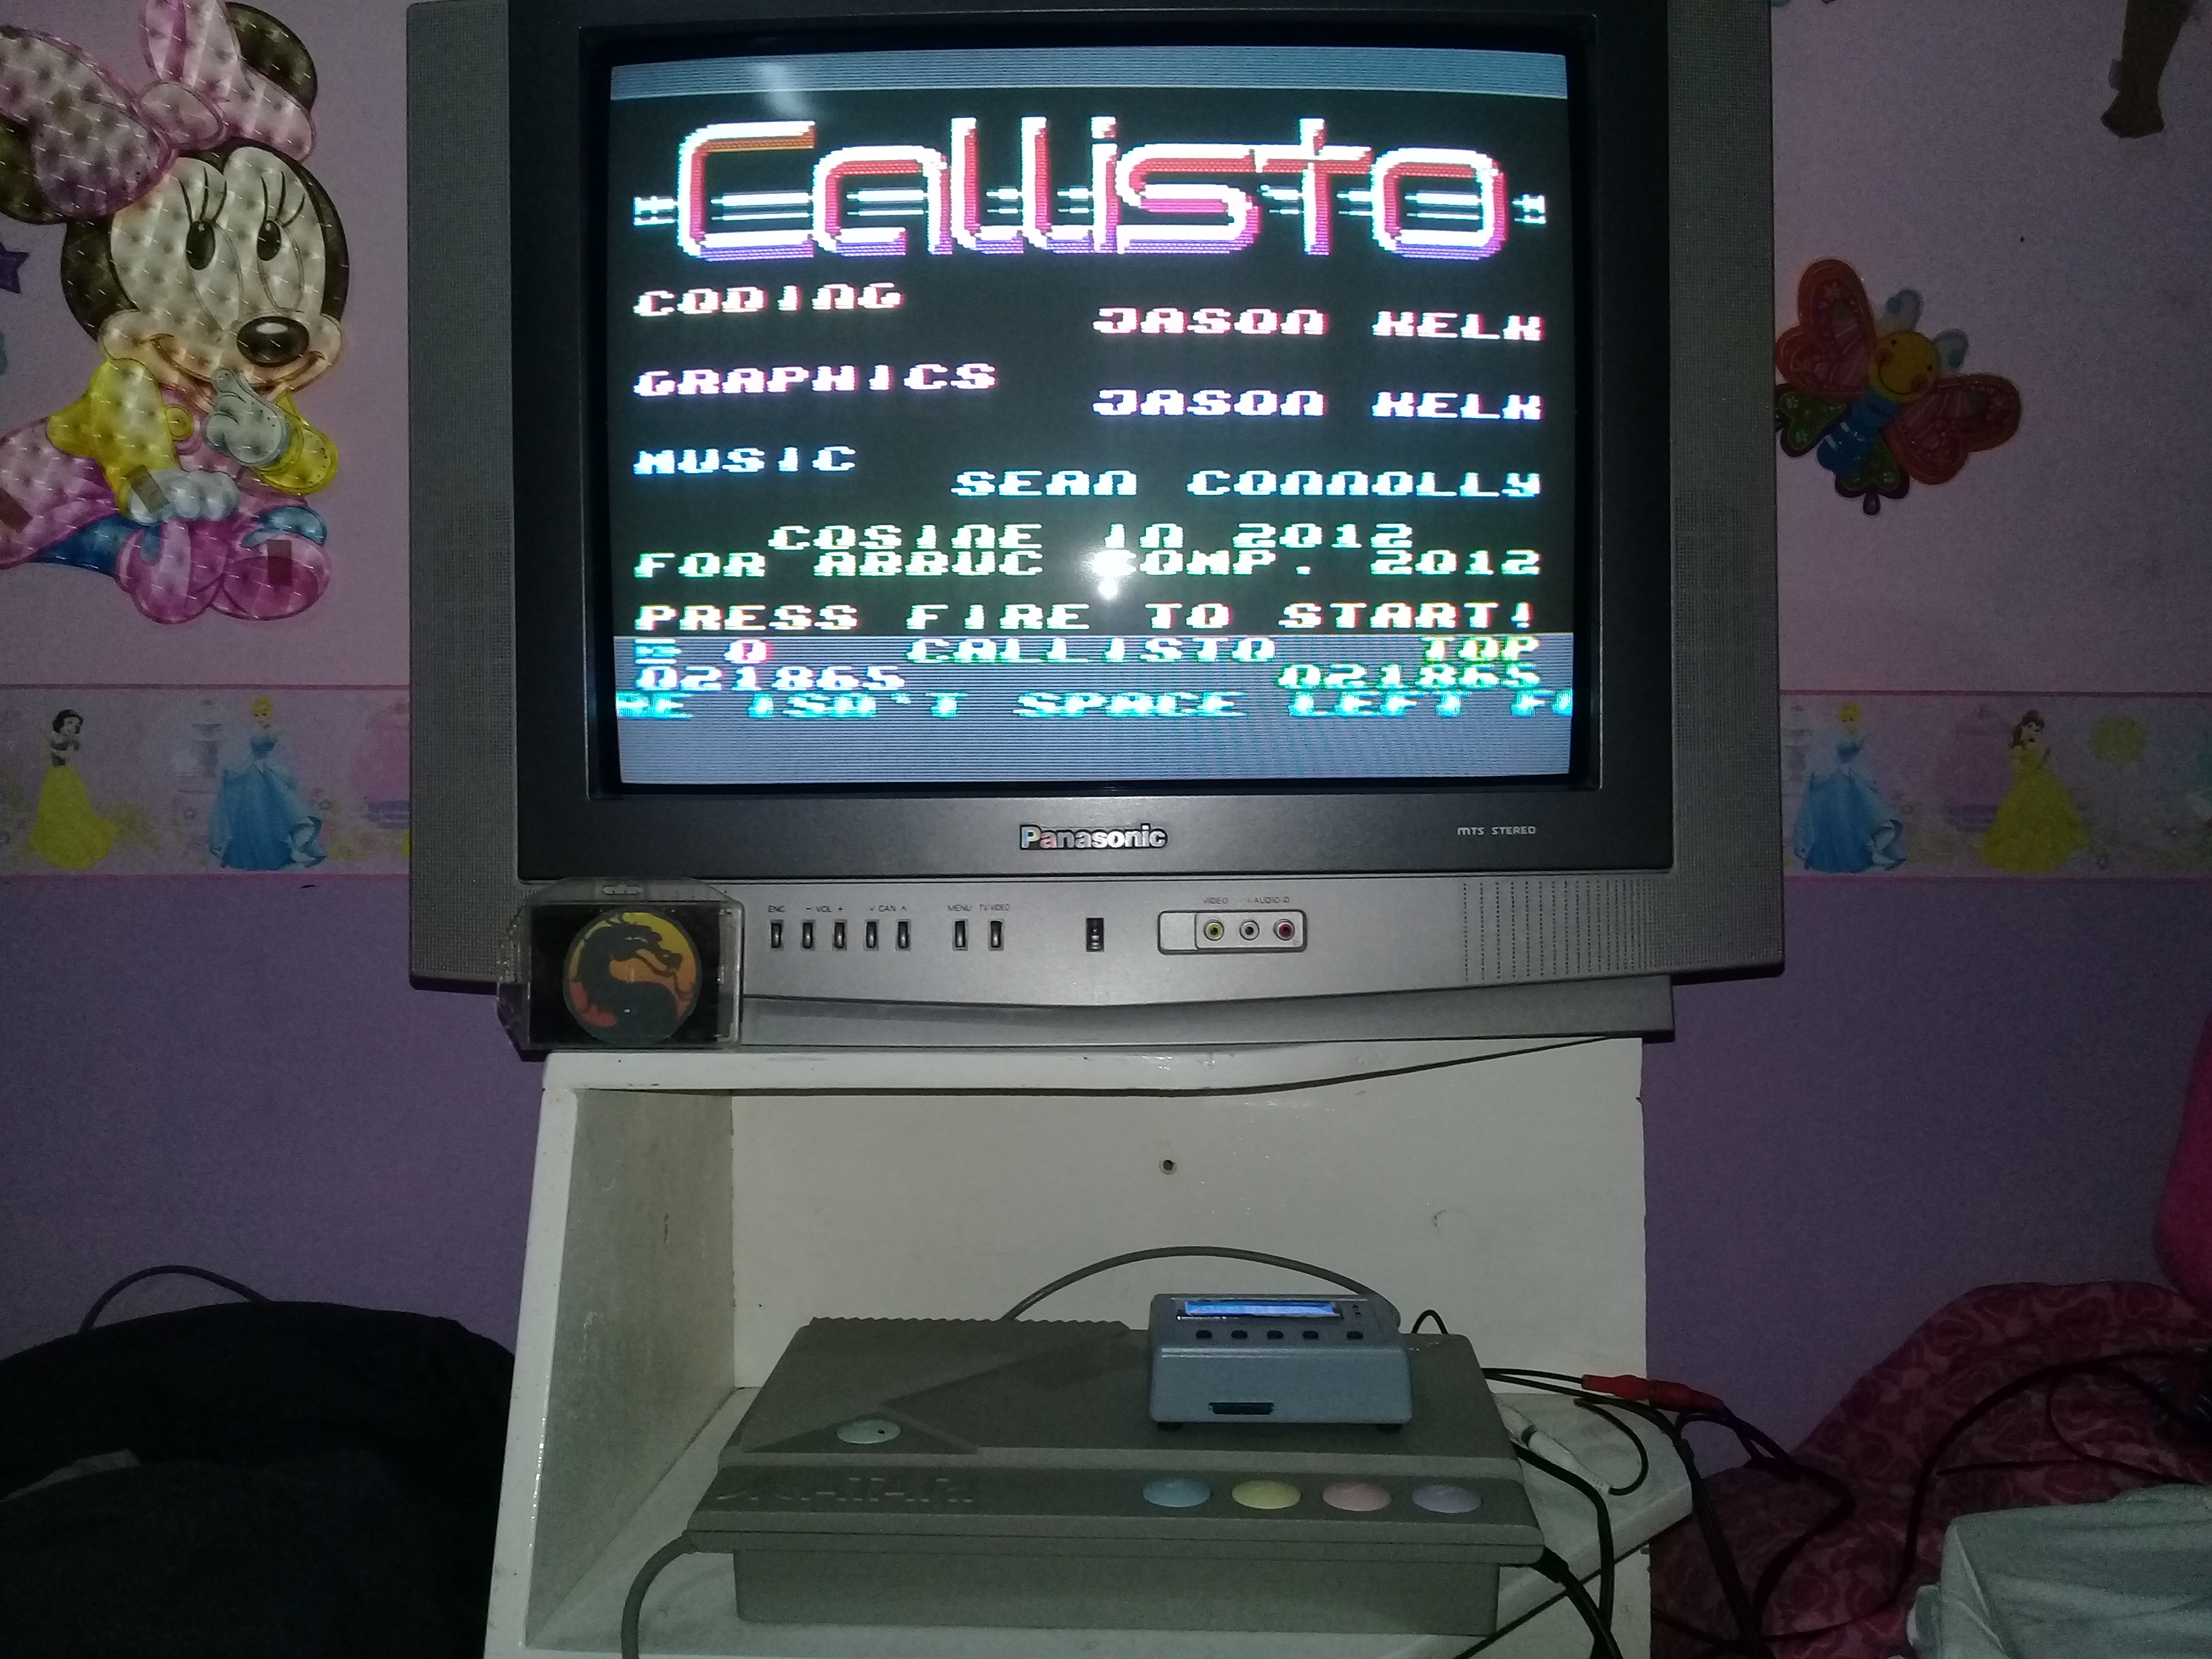 omargeddon: Callisto (Atari 400/800/XL/XE) 21,865 points on 2020-01-05 21:33:59